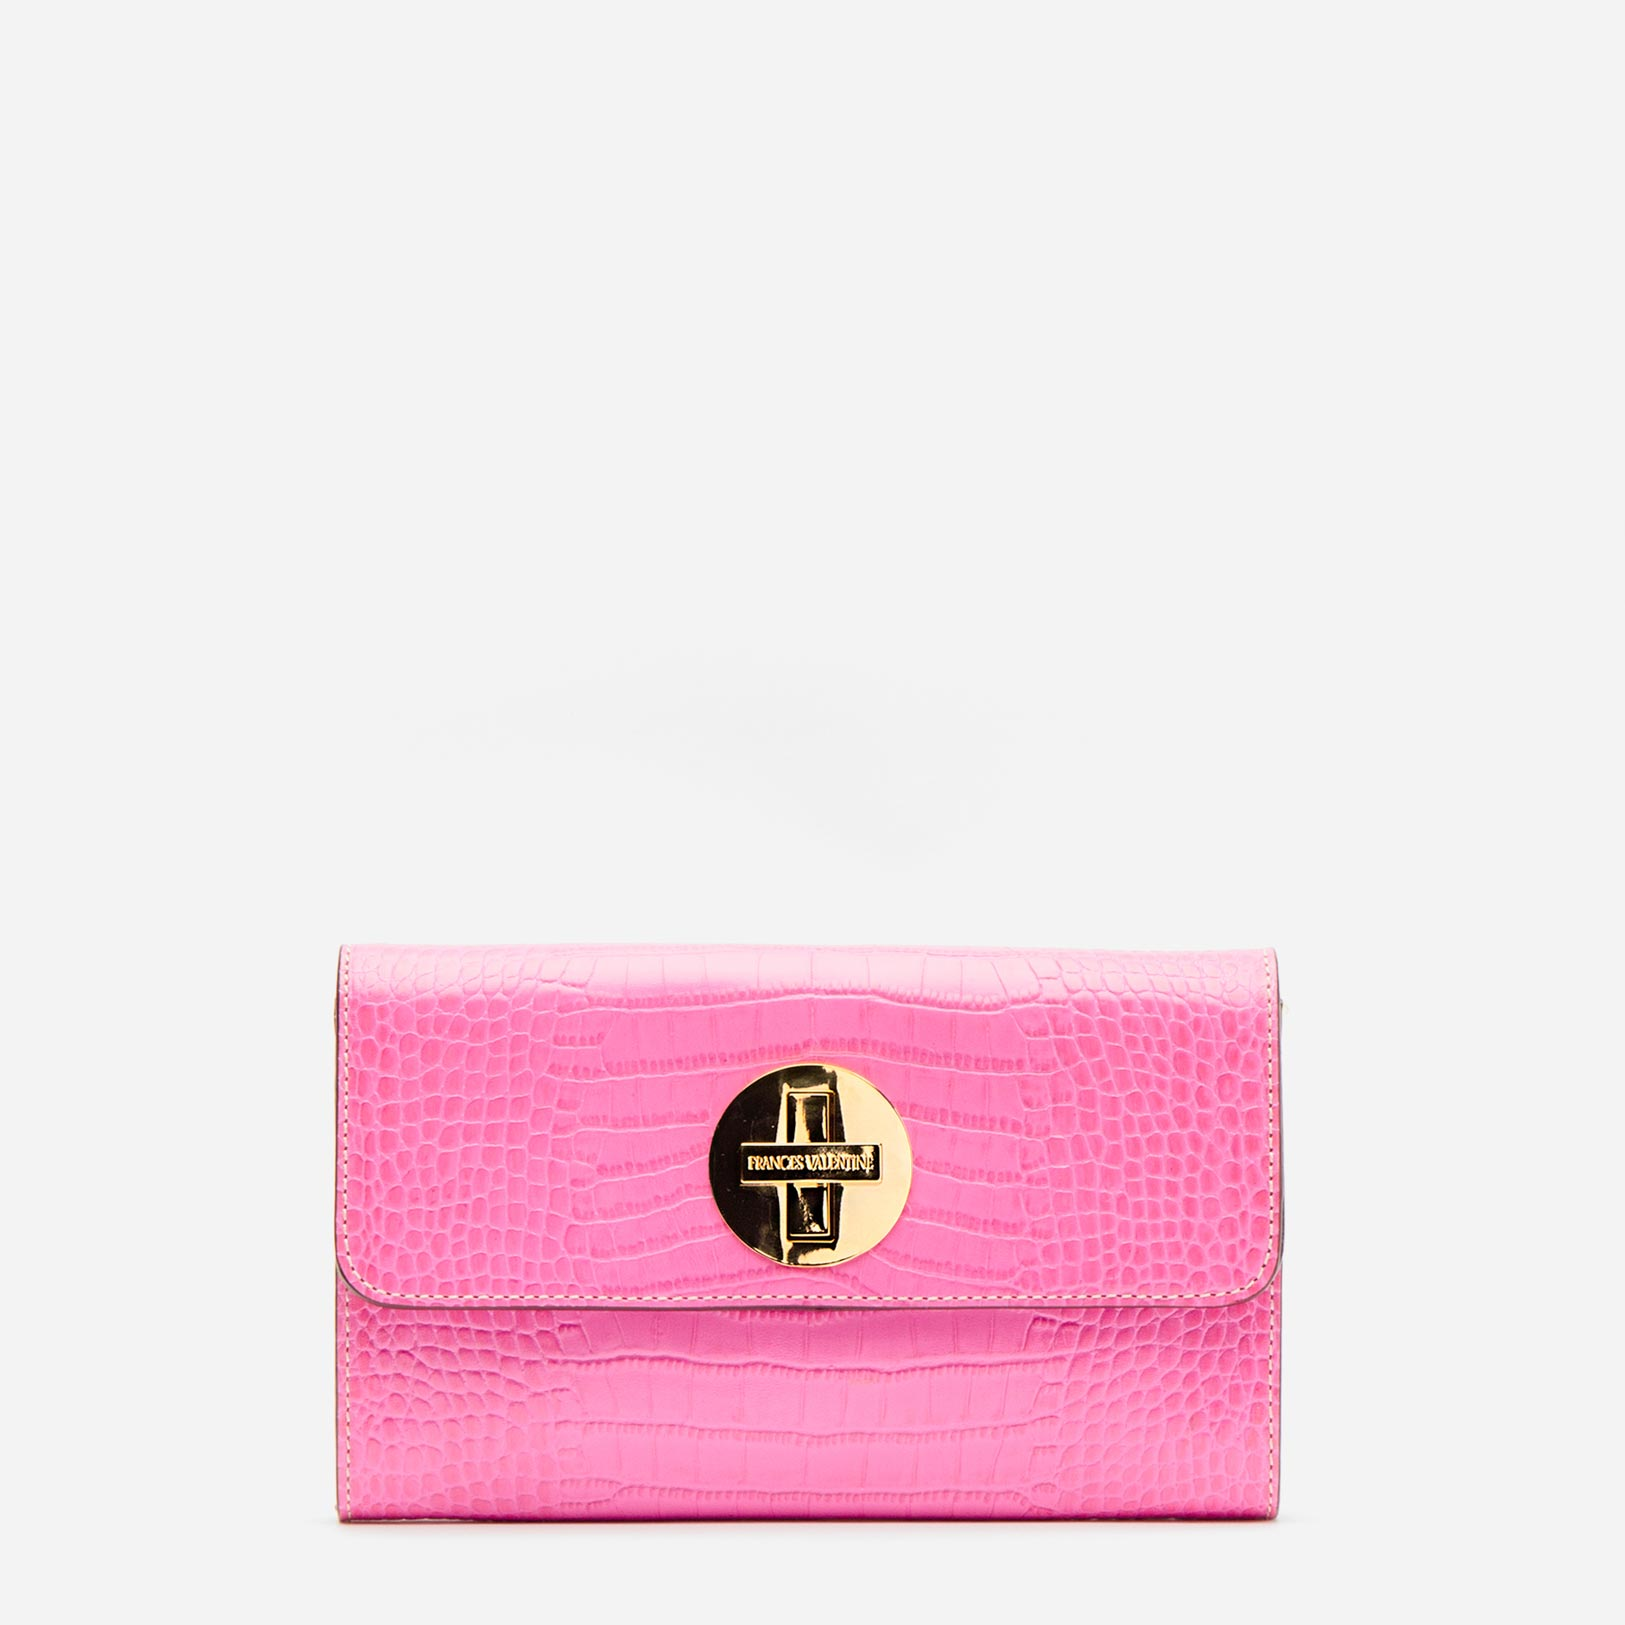 Kelly Crossbody Clutch Croc Embossed Leather Pink - Frances Valentine